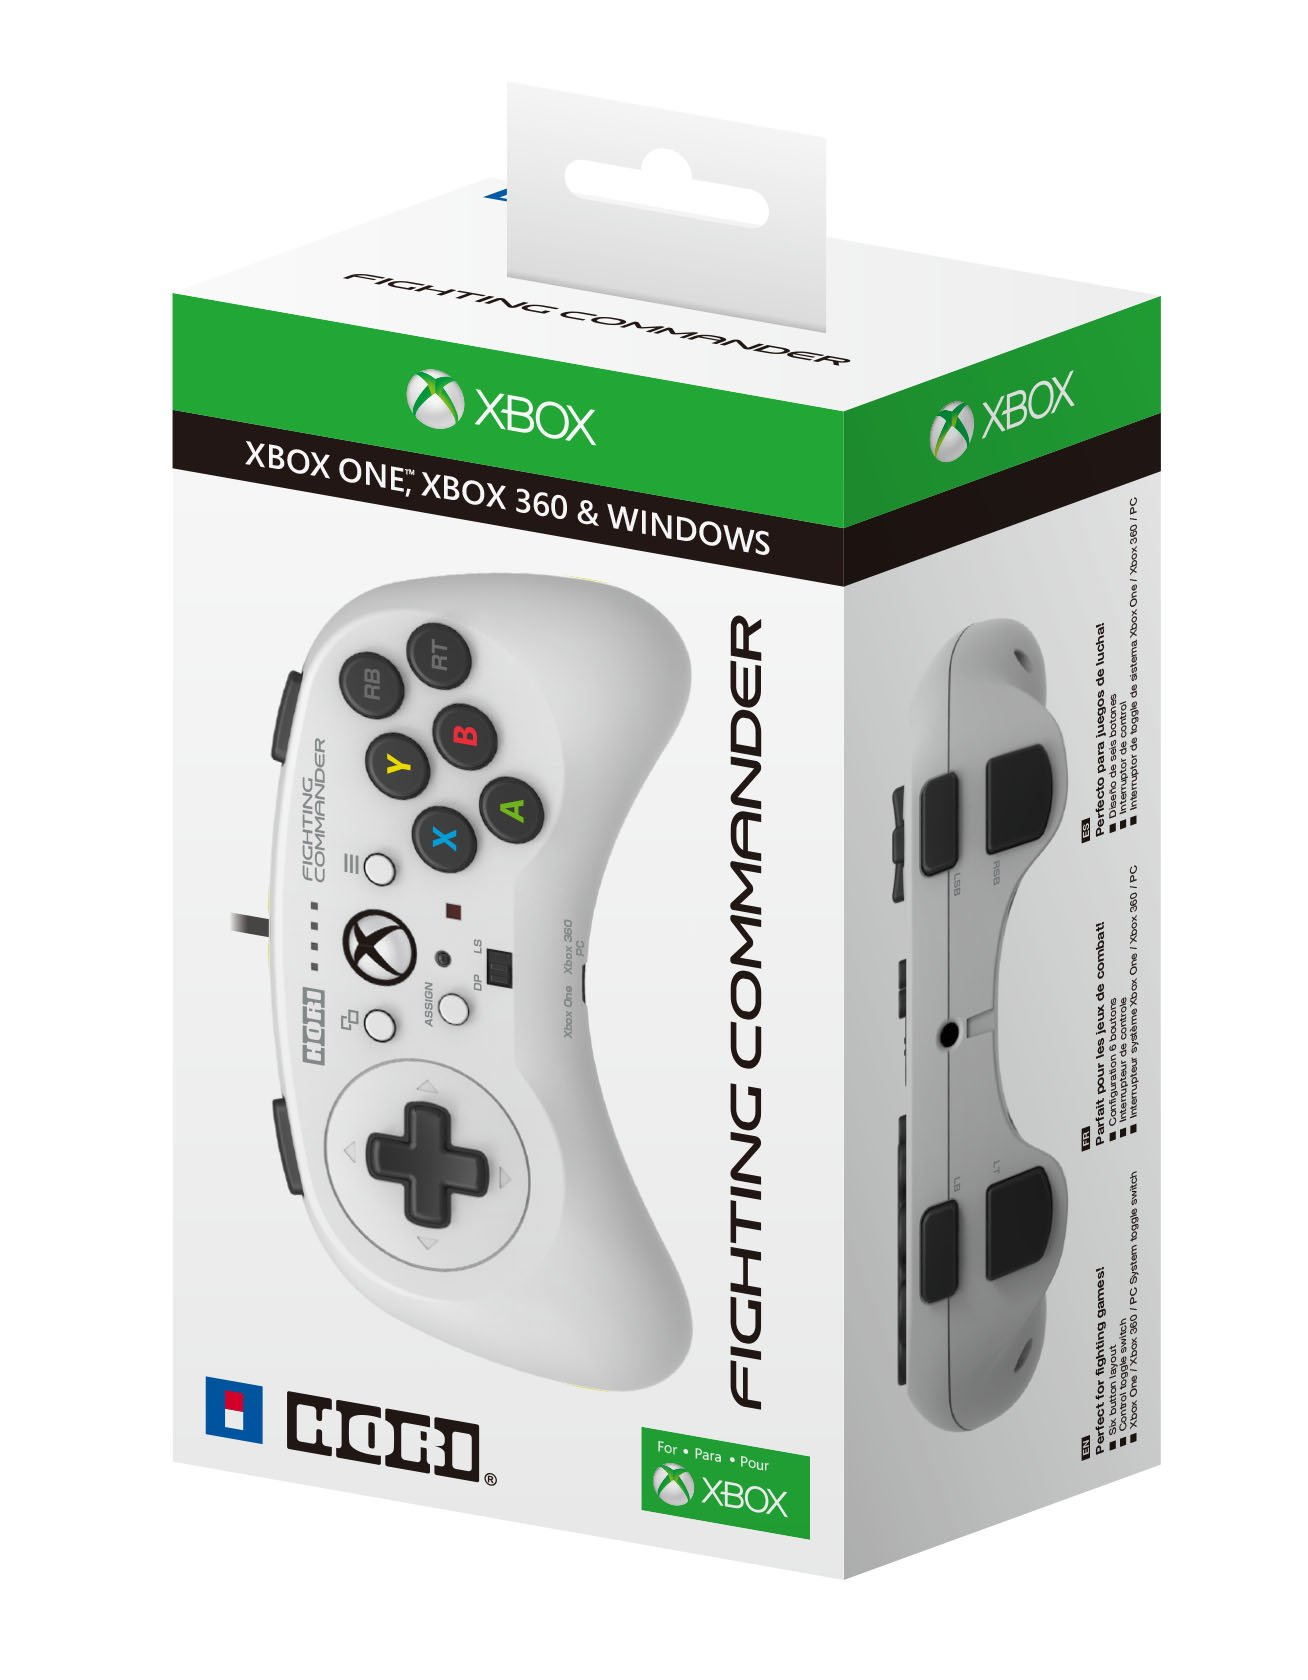 HORI Fighting Commander for Xbox One Officially Licensed by Microsoft by Hori (Image #2)